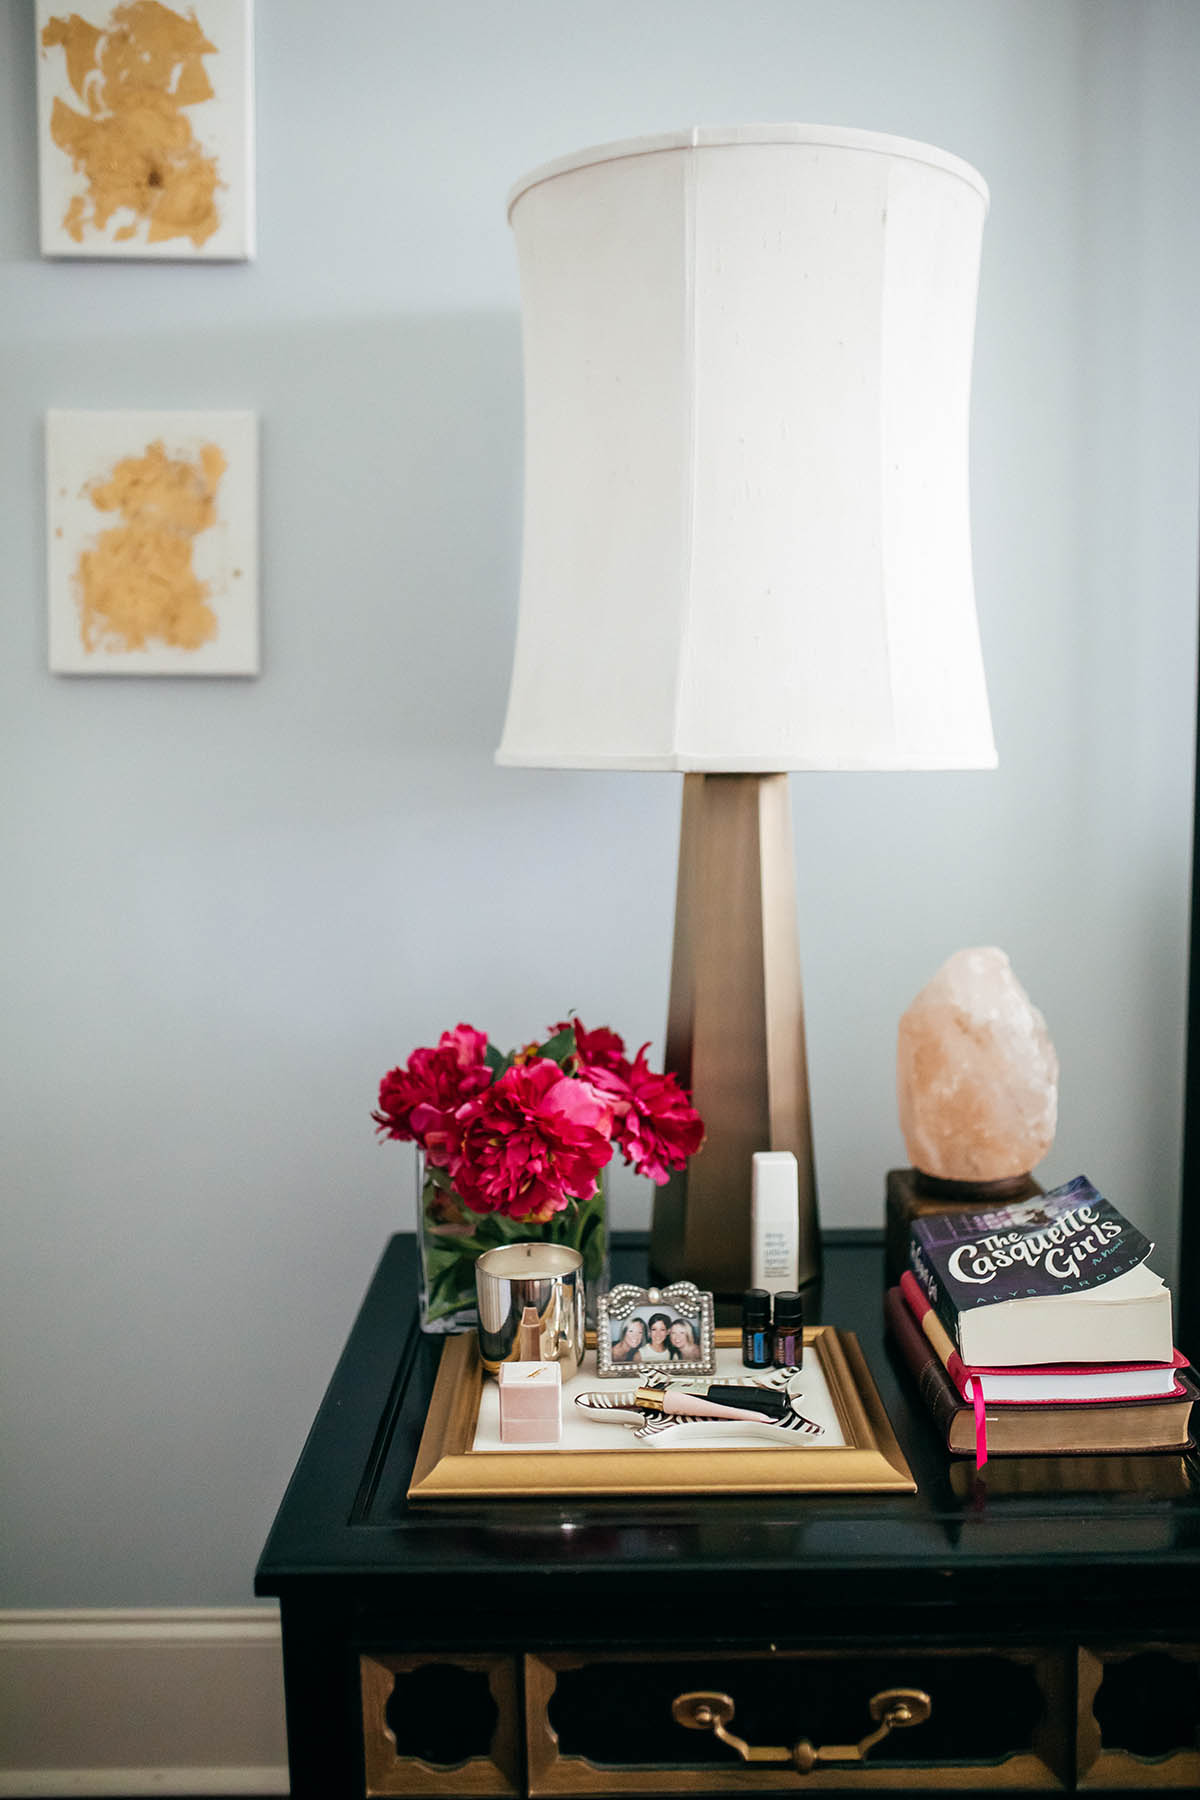 Master Bedroom Inspiration   How to Create a Space For Positivity   Pretty Bedroom Organization Ideas   Himalayan Salt Lamp